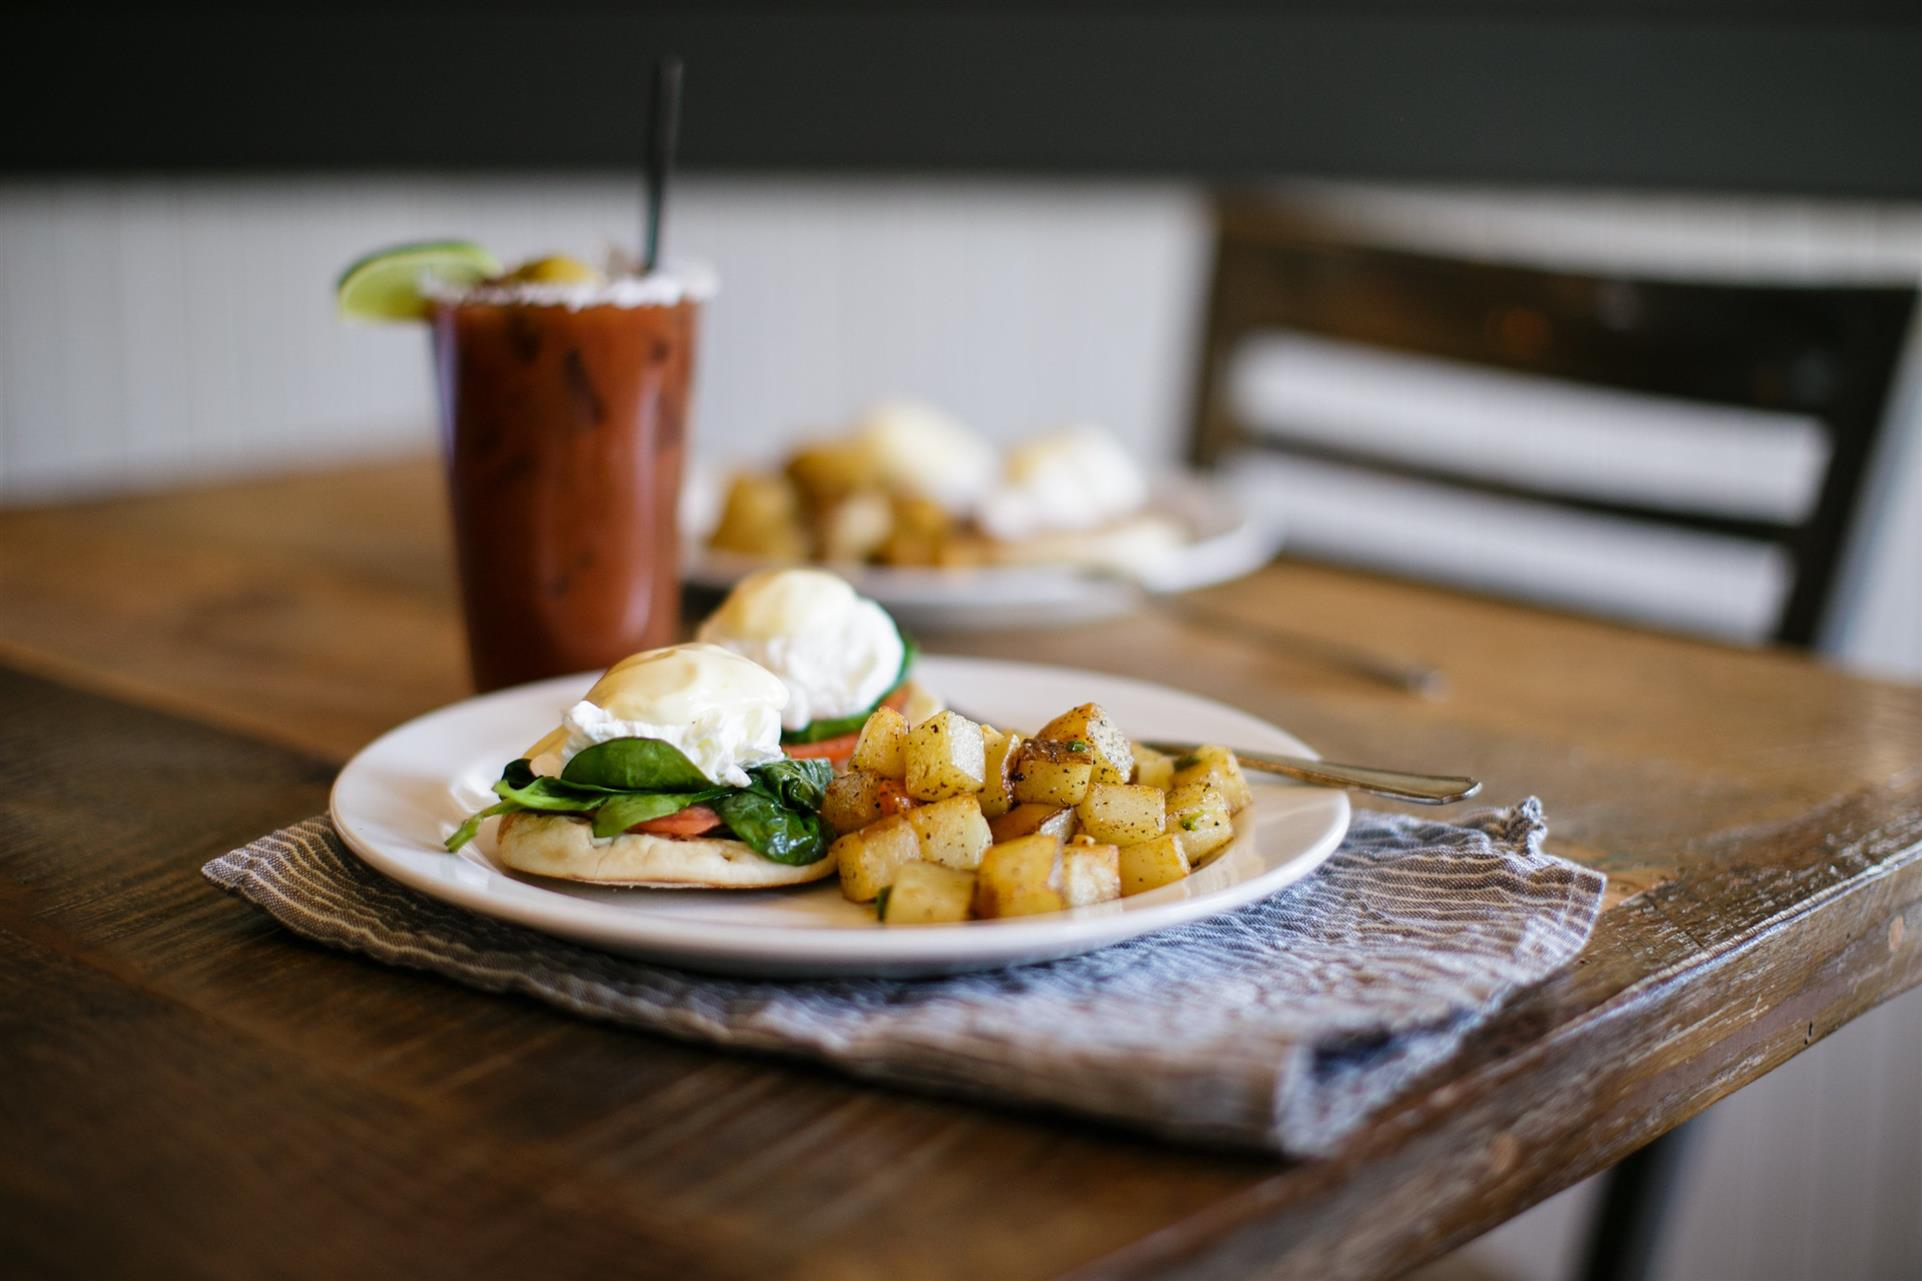 roasted potatoes and eggs benedict on a plate, with a drink and another plate of food in the background